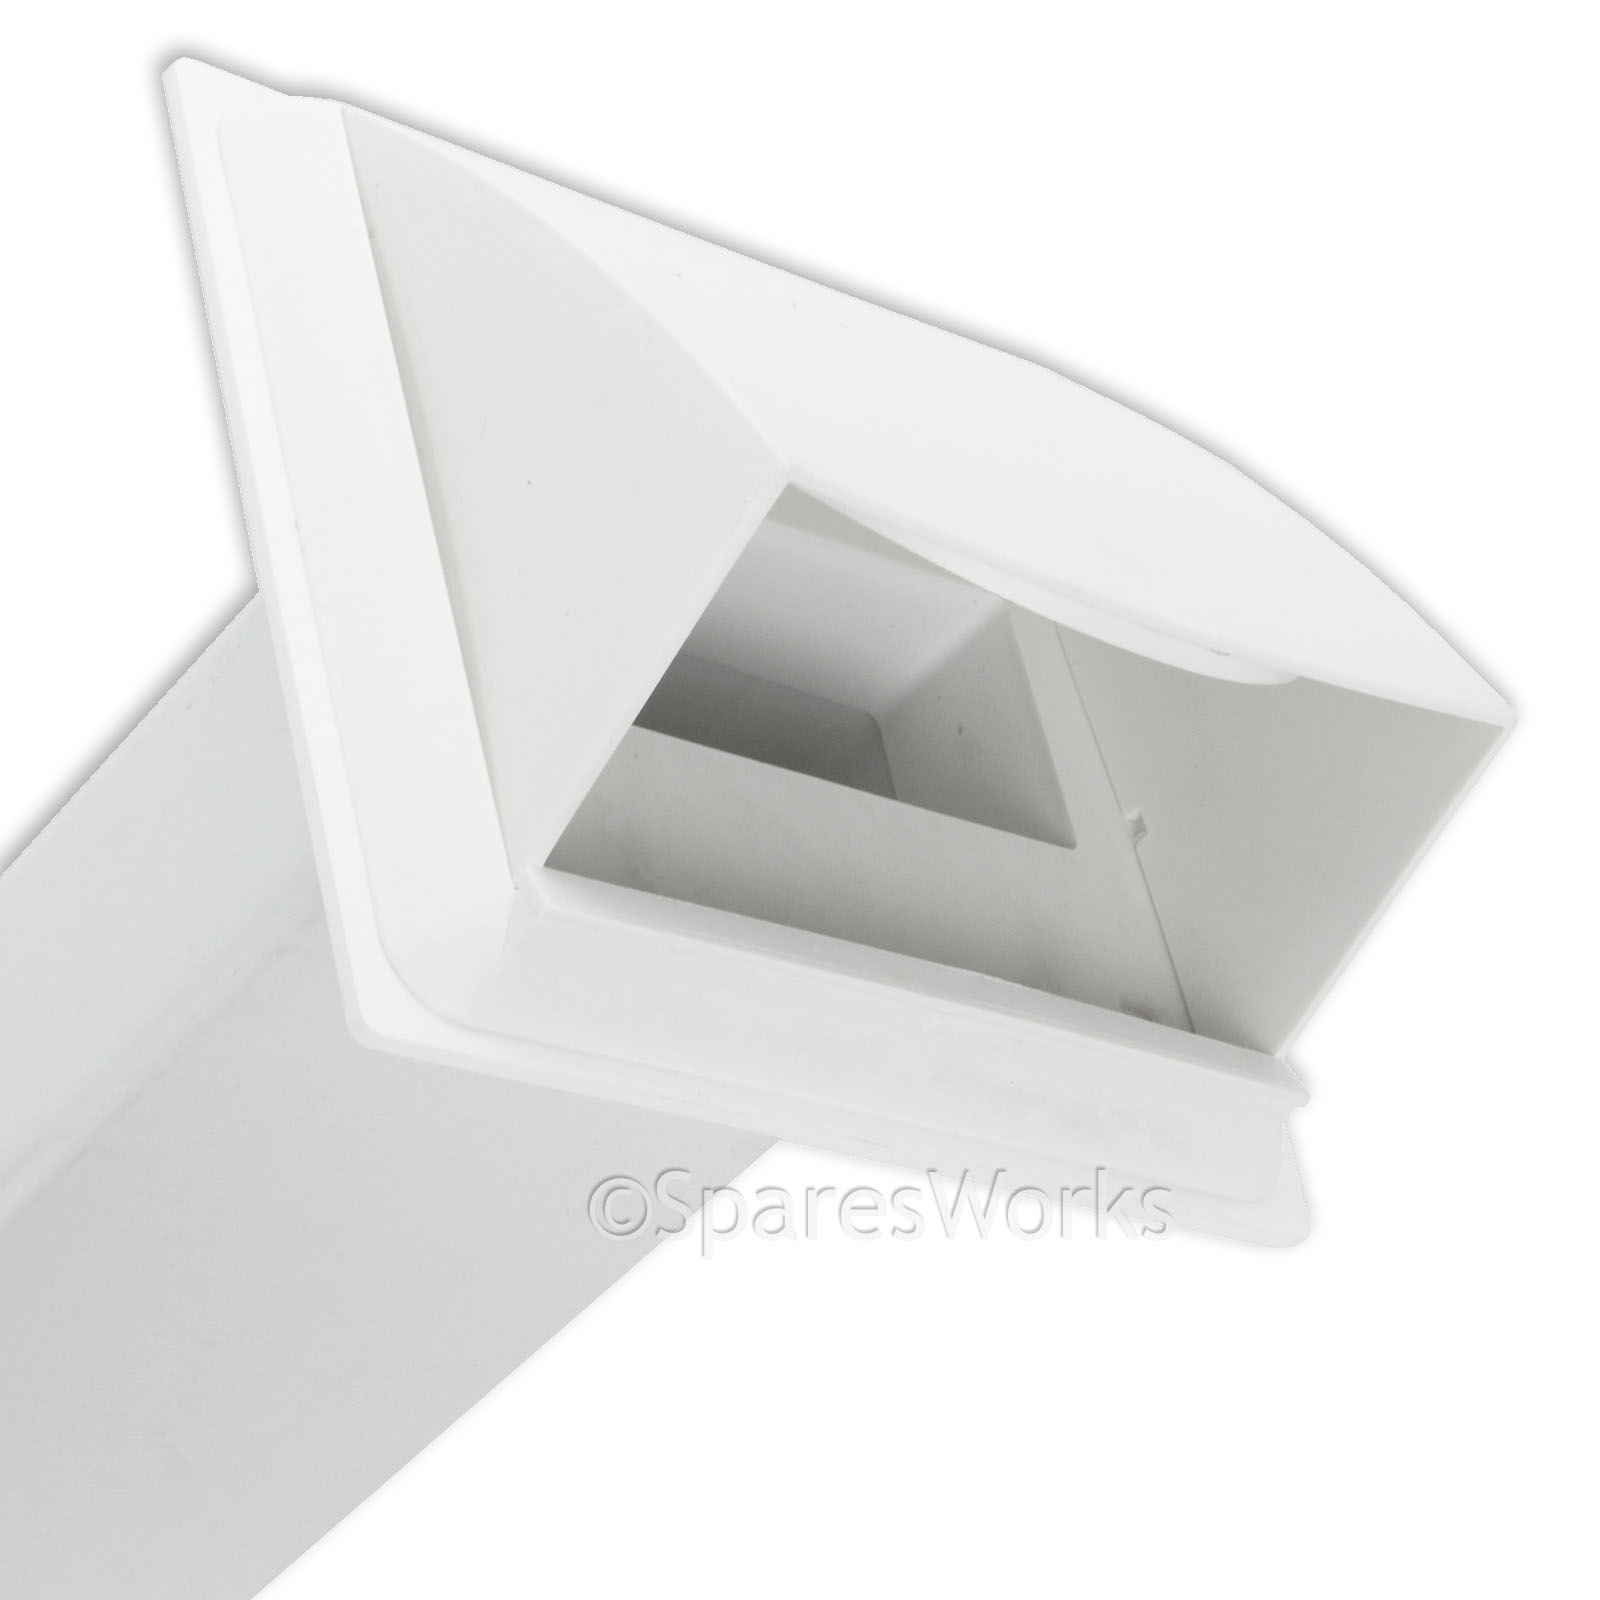 Venting kit for zanussi tumble dryer vent external wall for Window vent kit